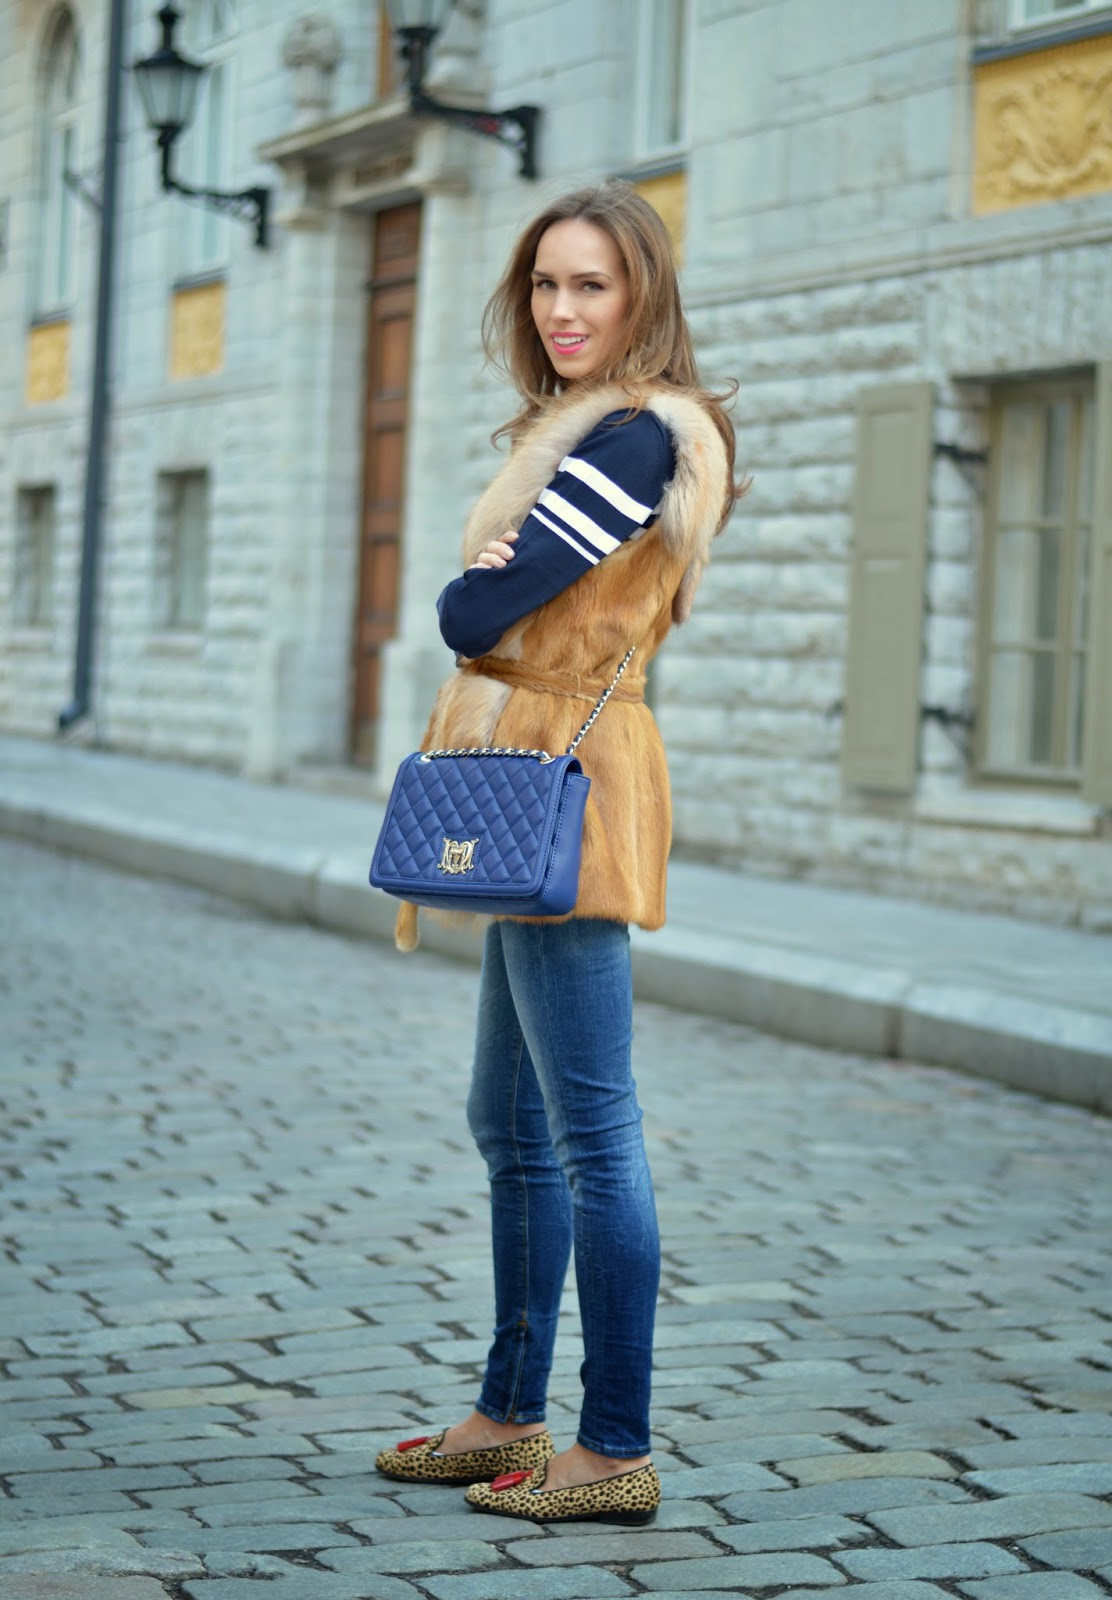 moschino-quilted-blue-bag-guess-jeans-il-.mio-furry-leopard-slippers kristjaana mere